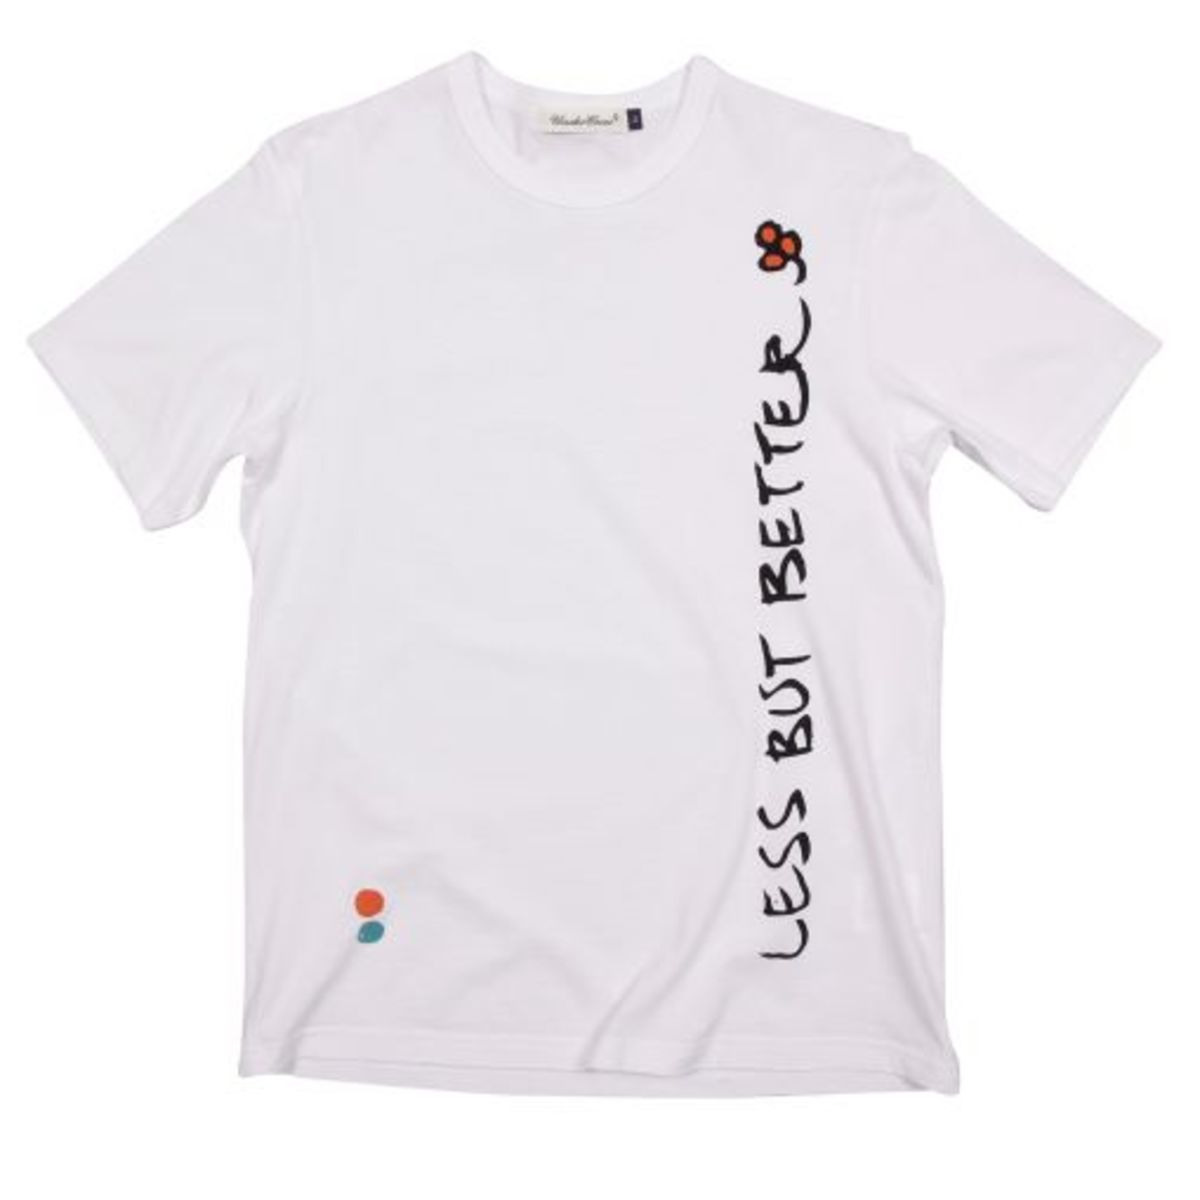 undercover_ss10_tee_8